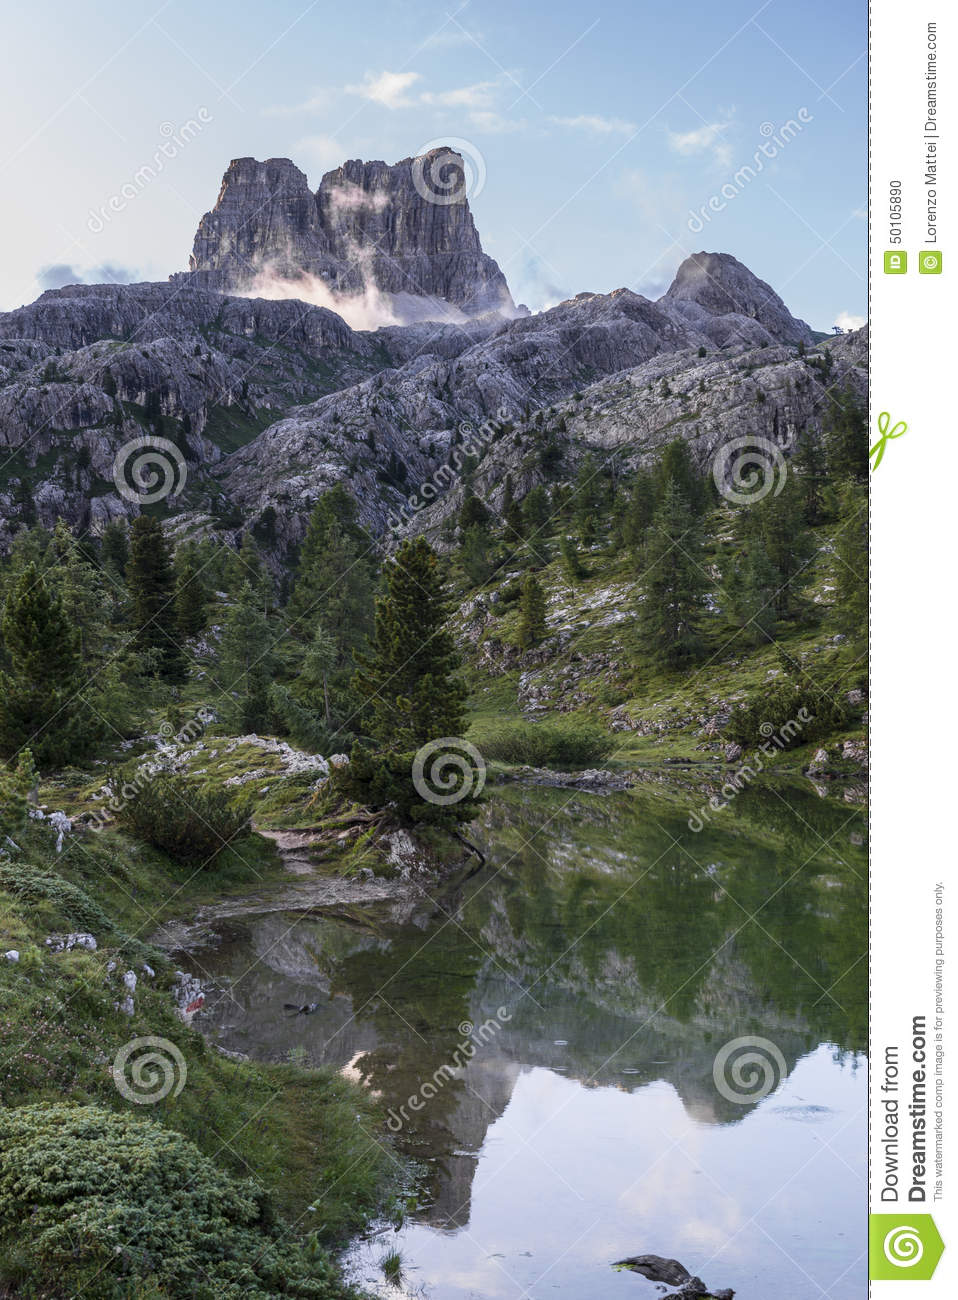 Mount Averau reflected in lake Limedes at sunrise, blue sky with clouds, Dolomites, Veneto, Italy